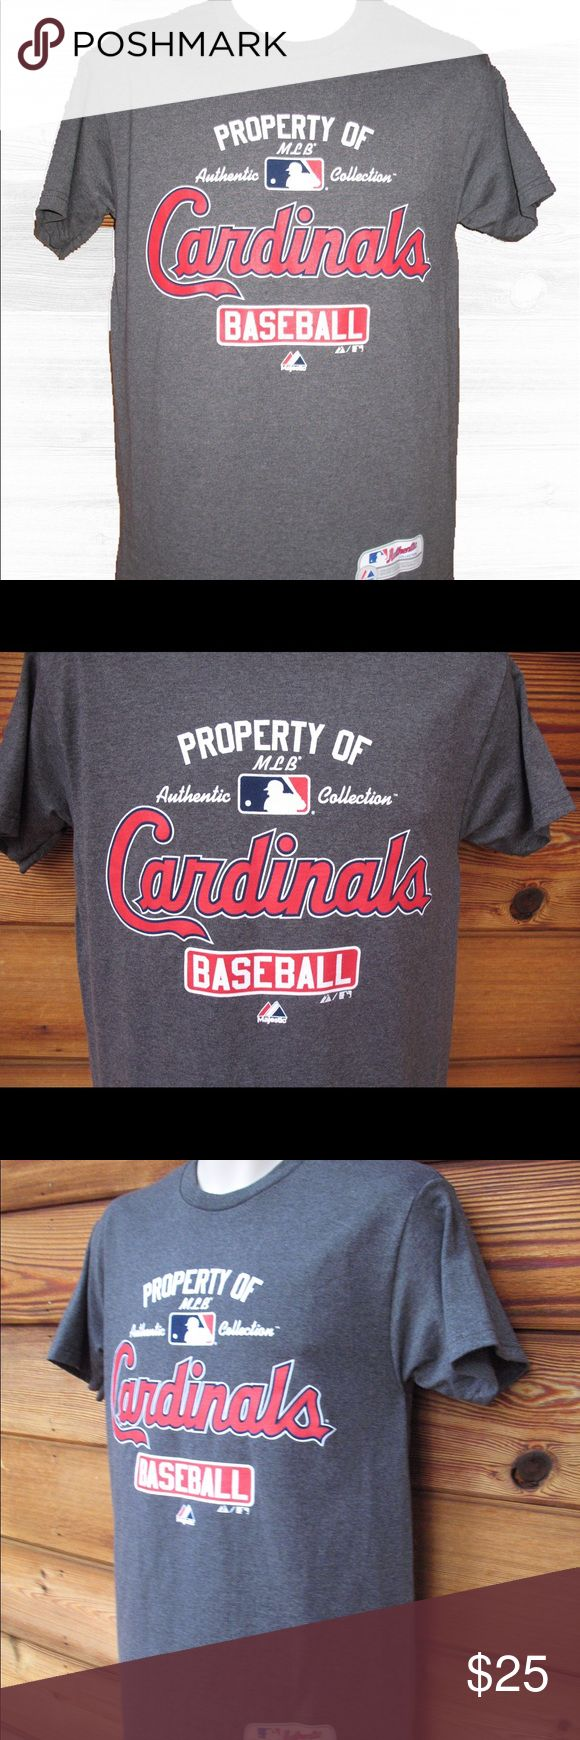 "🆕 St Louis Cardinals MLB T-Shirt Tee- M St Louis Cardinals MLB T-Shirt, Size Medium, New With Tags  Details: Majestic Color: Dark Heather Gray Size: M 50% Cotton/50% Polyester Machine Wash  Measurements: Length: 29"" Chest: 38"" Waist: 38"" Majestic Shirts Tees - Short Sleeve"